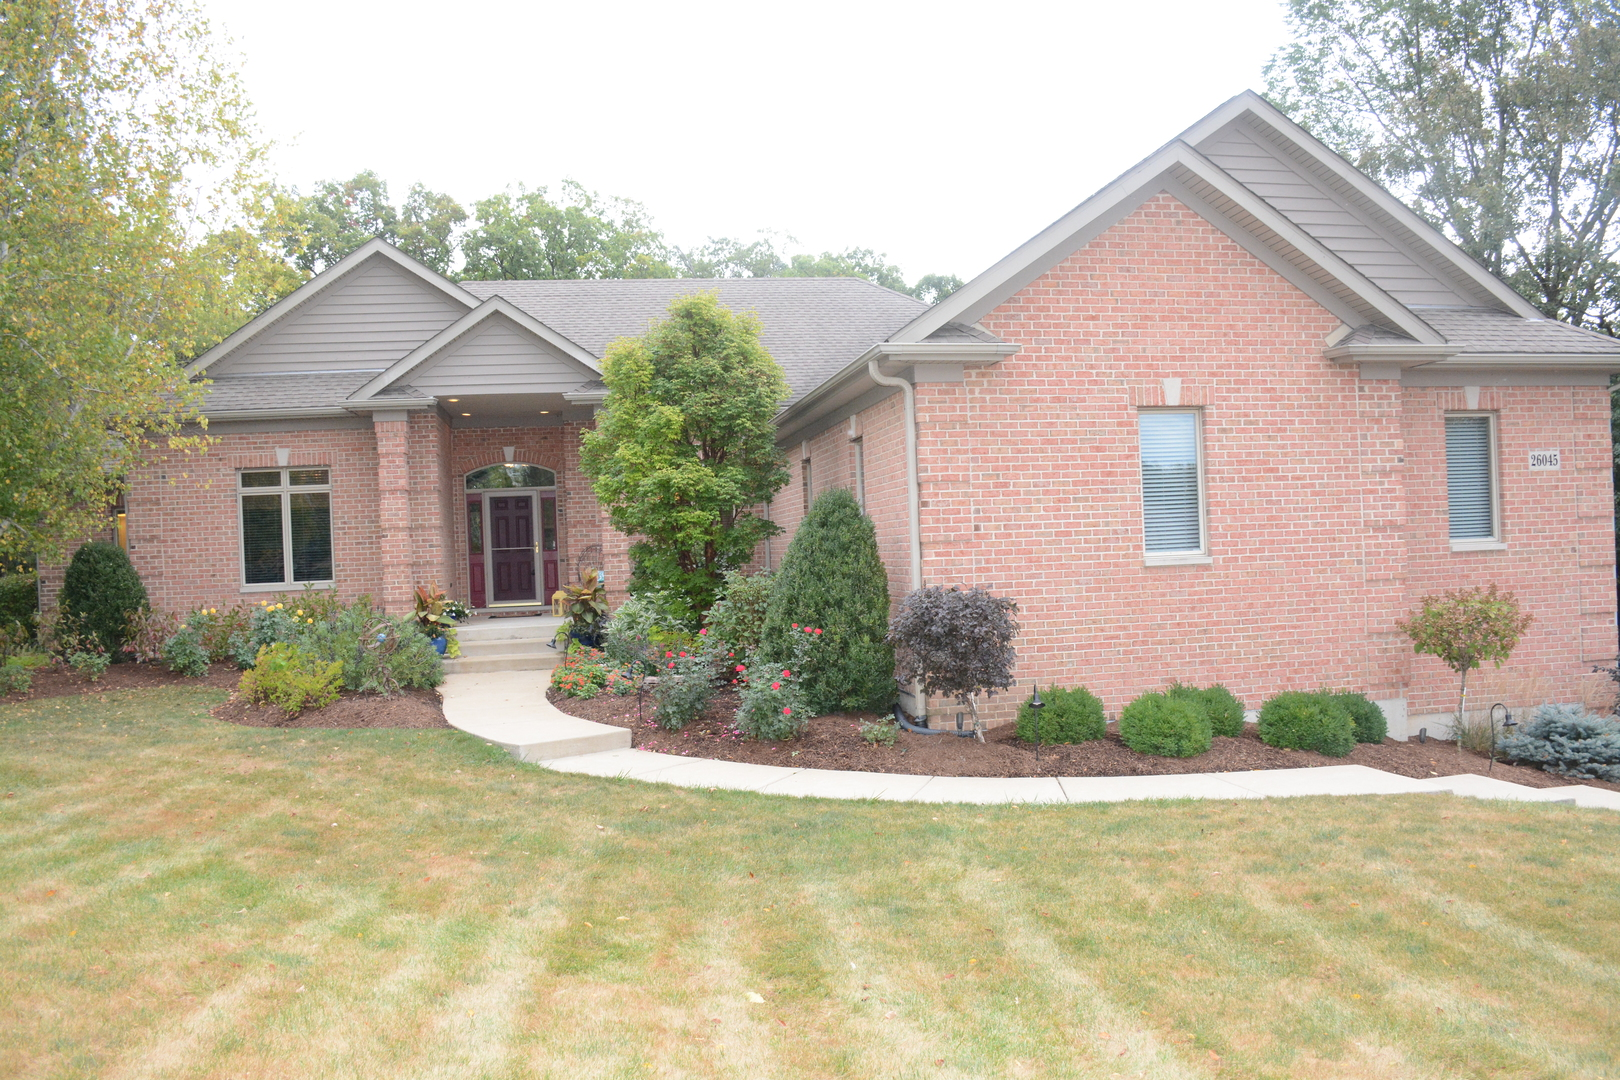 26045 West Laurel Court, Wauconda, Illinois 60084